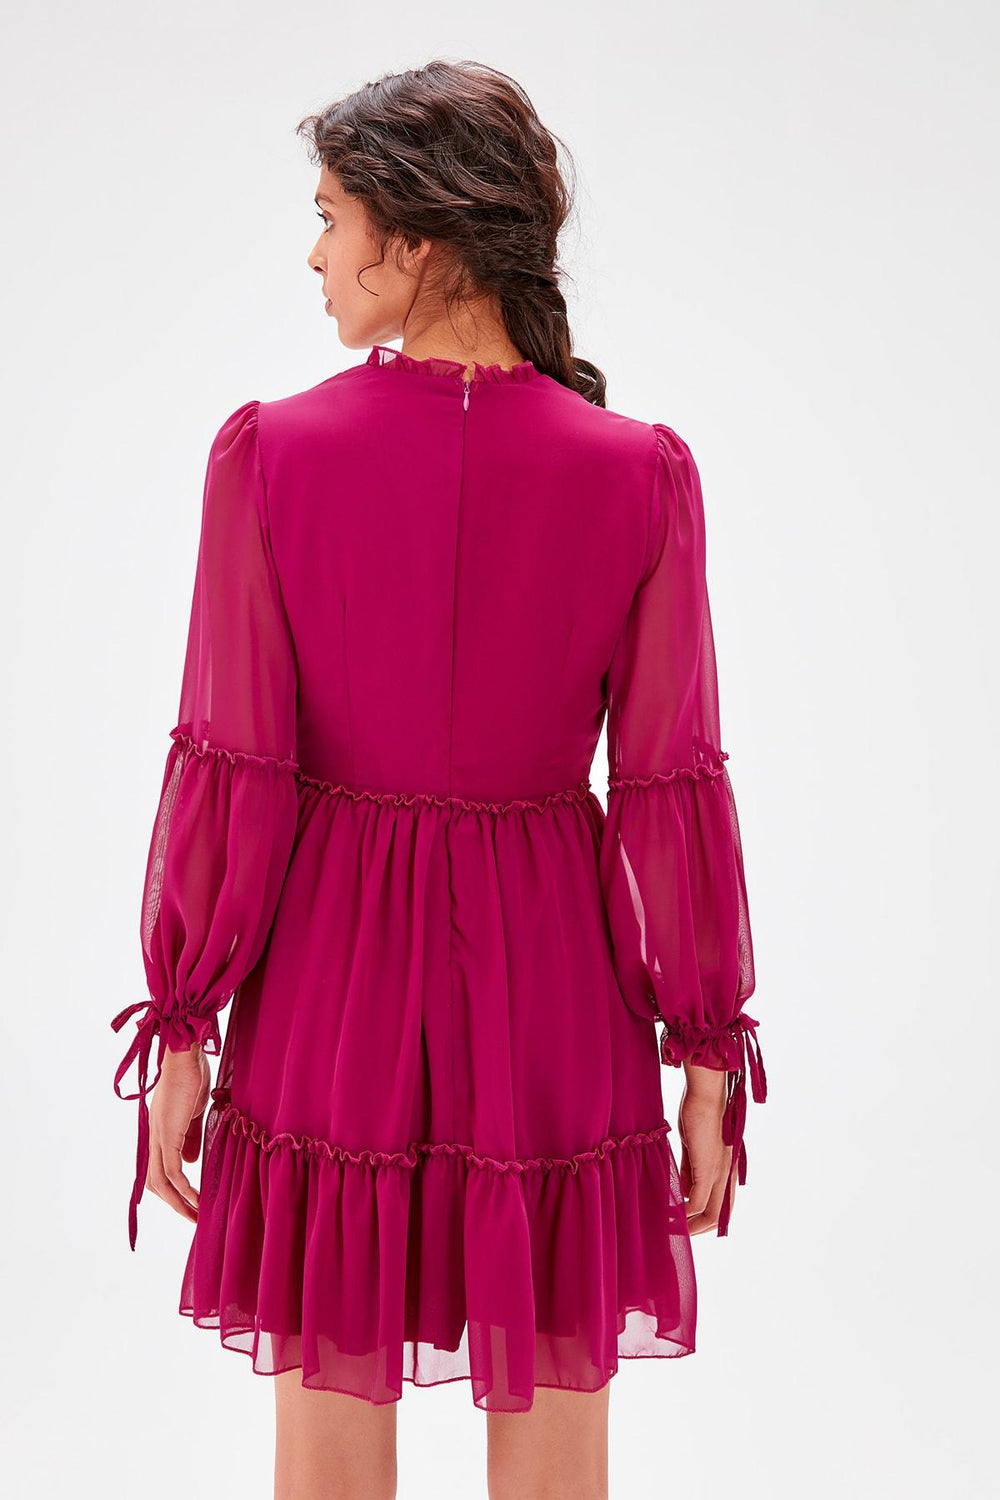 Plum Shirred Dress - Top Maxy